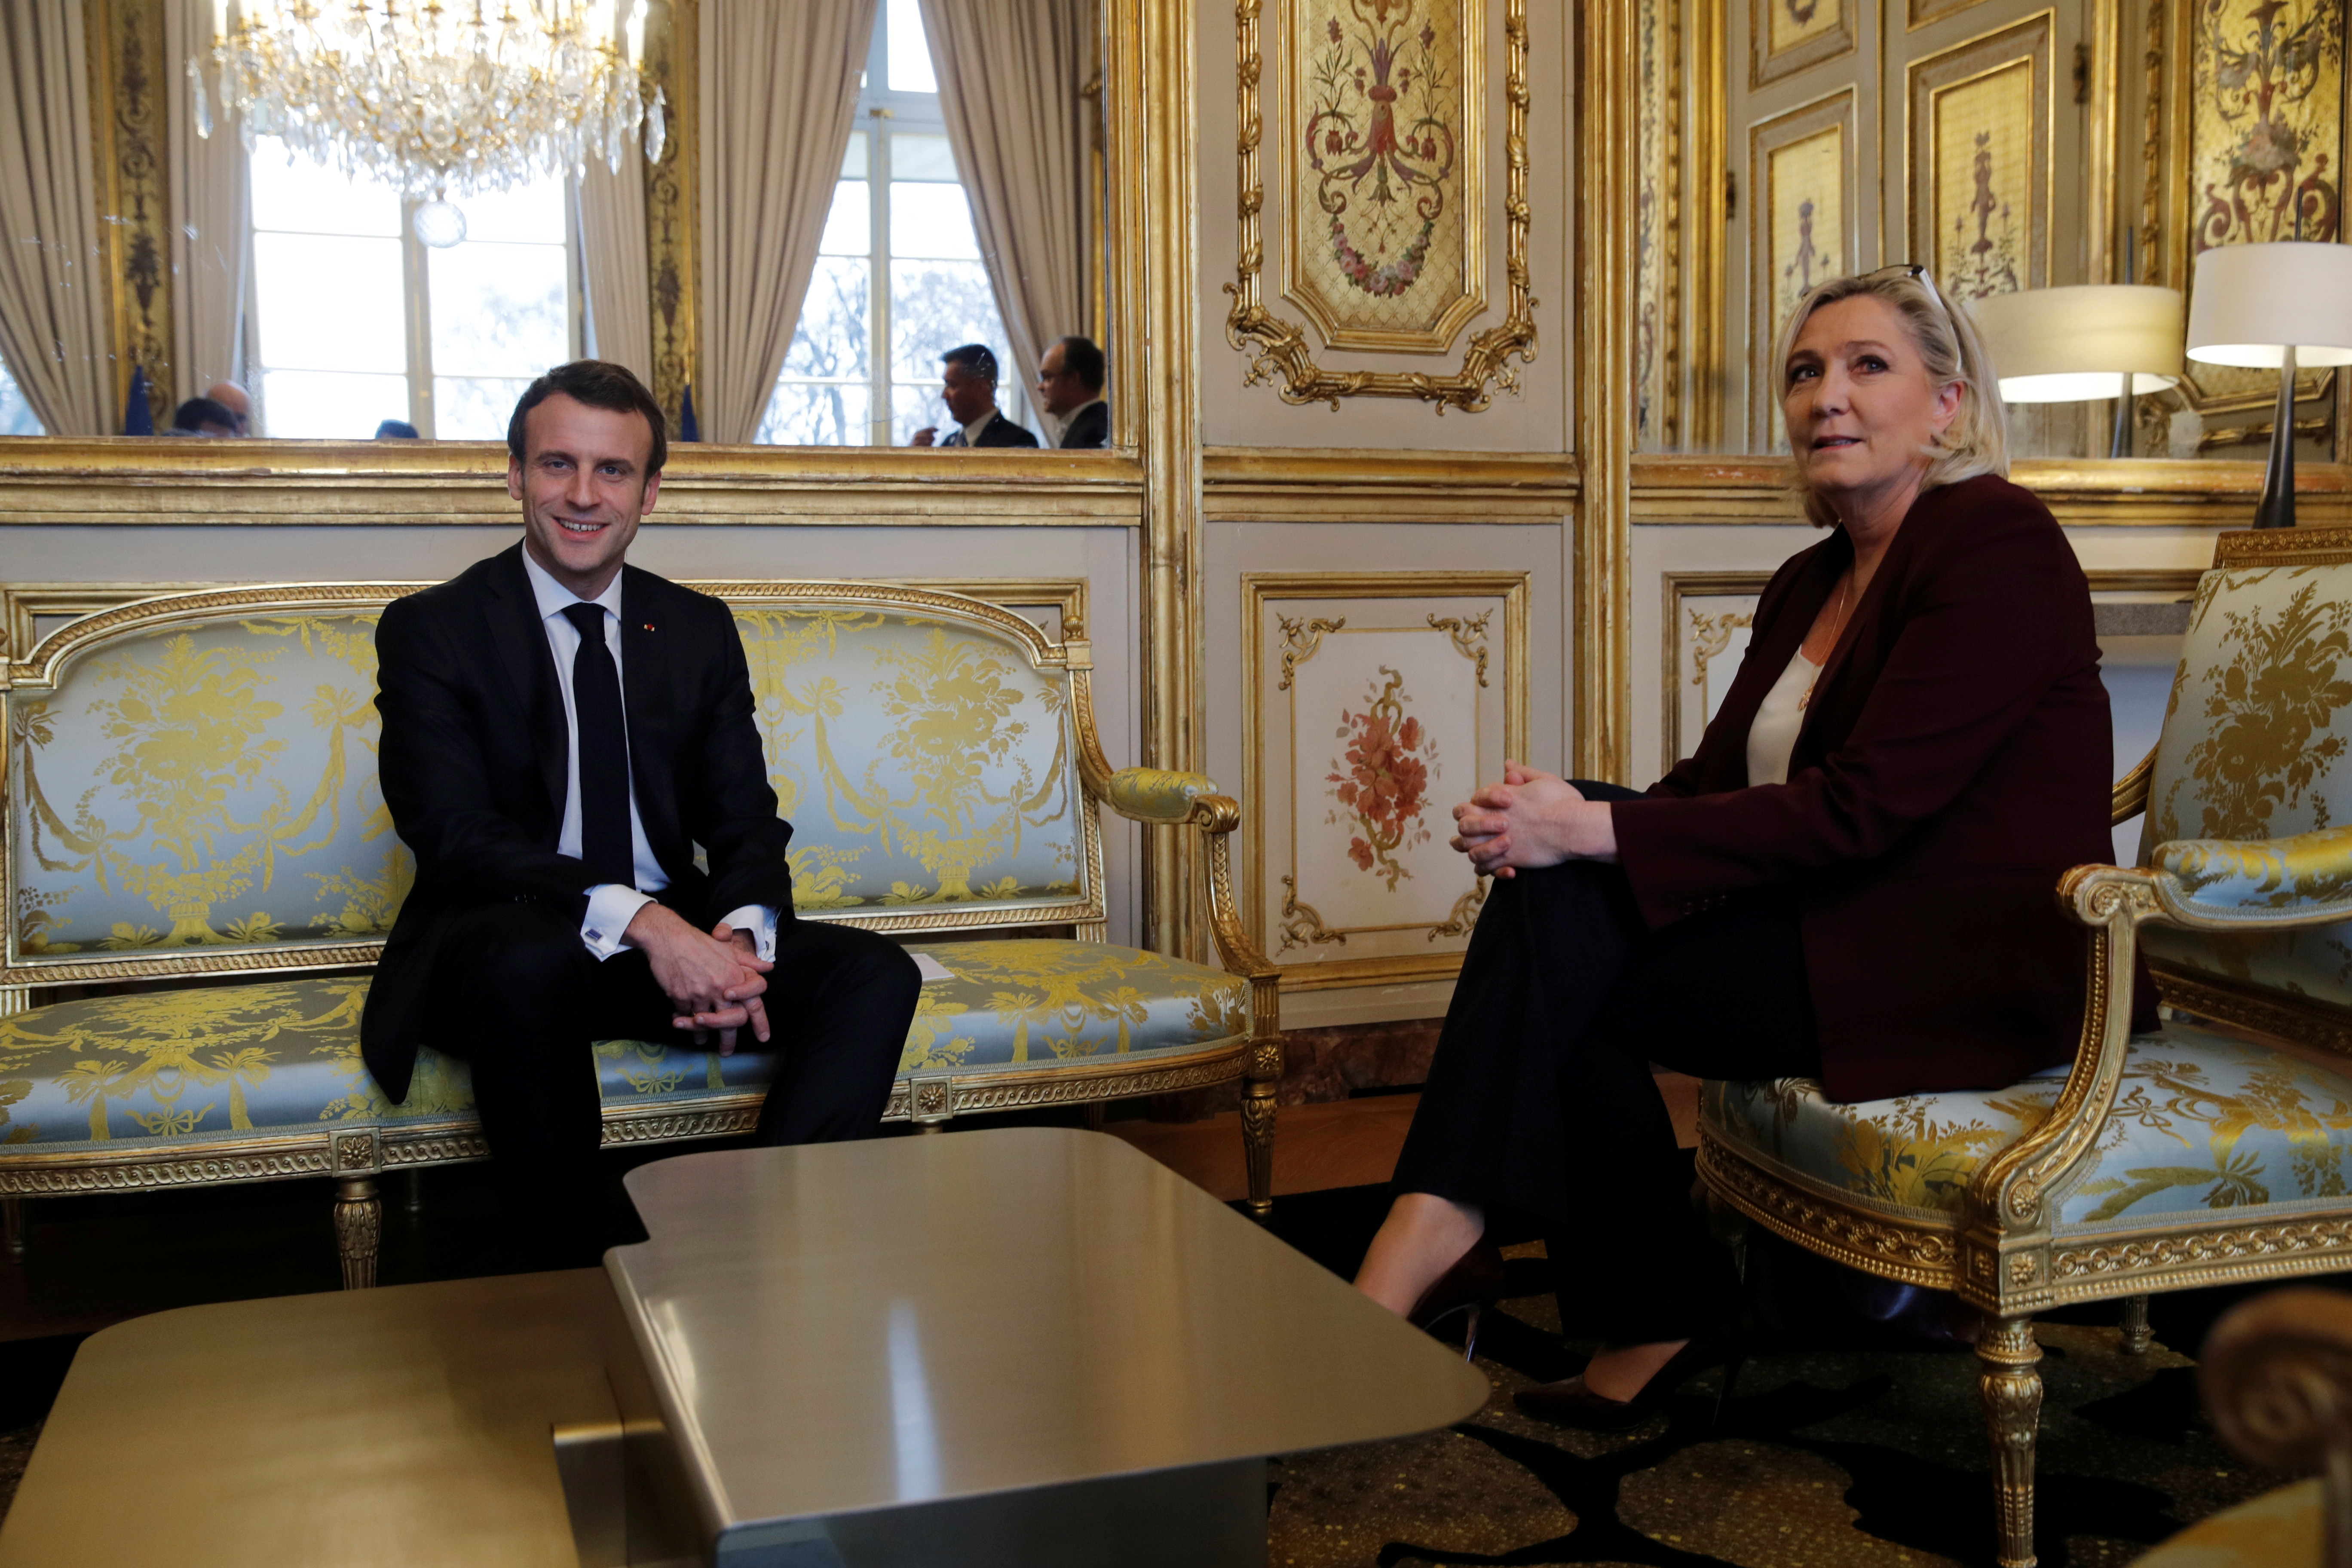 French President Emmanuel Macron attends a meeting with French far-right National Rally (Rassemblement National) party leader Marine Le Pen at the Elysee Palace in Paris, France, February 6, 2019. REUTERS/Philippe Wojazer/Pool/File Photo